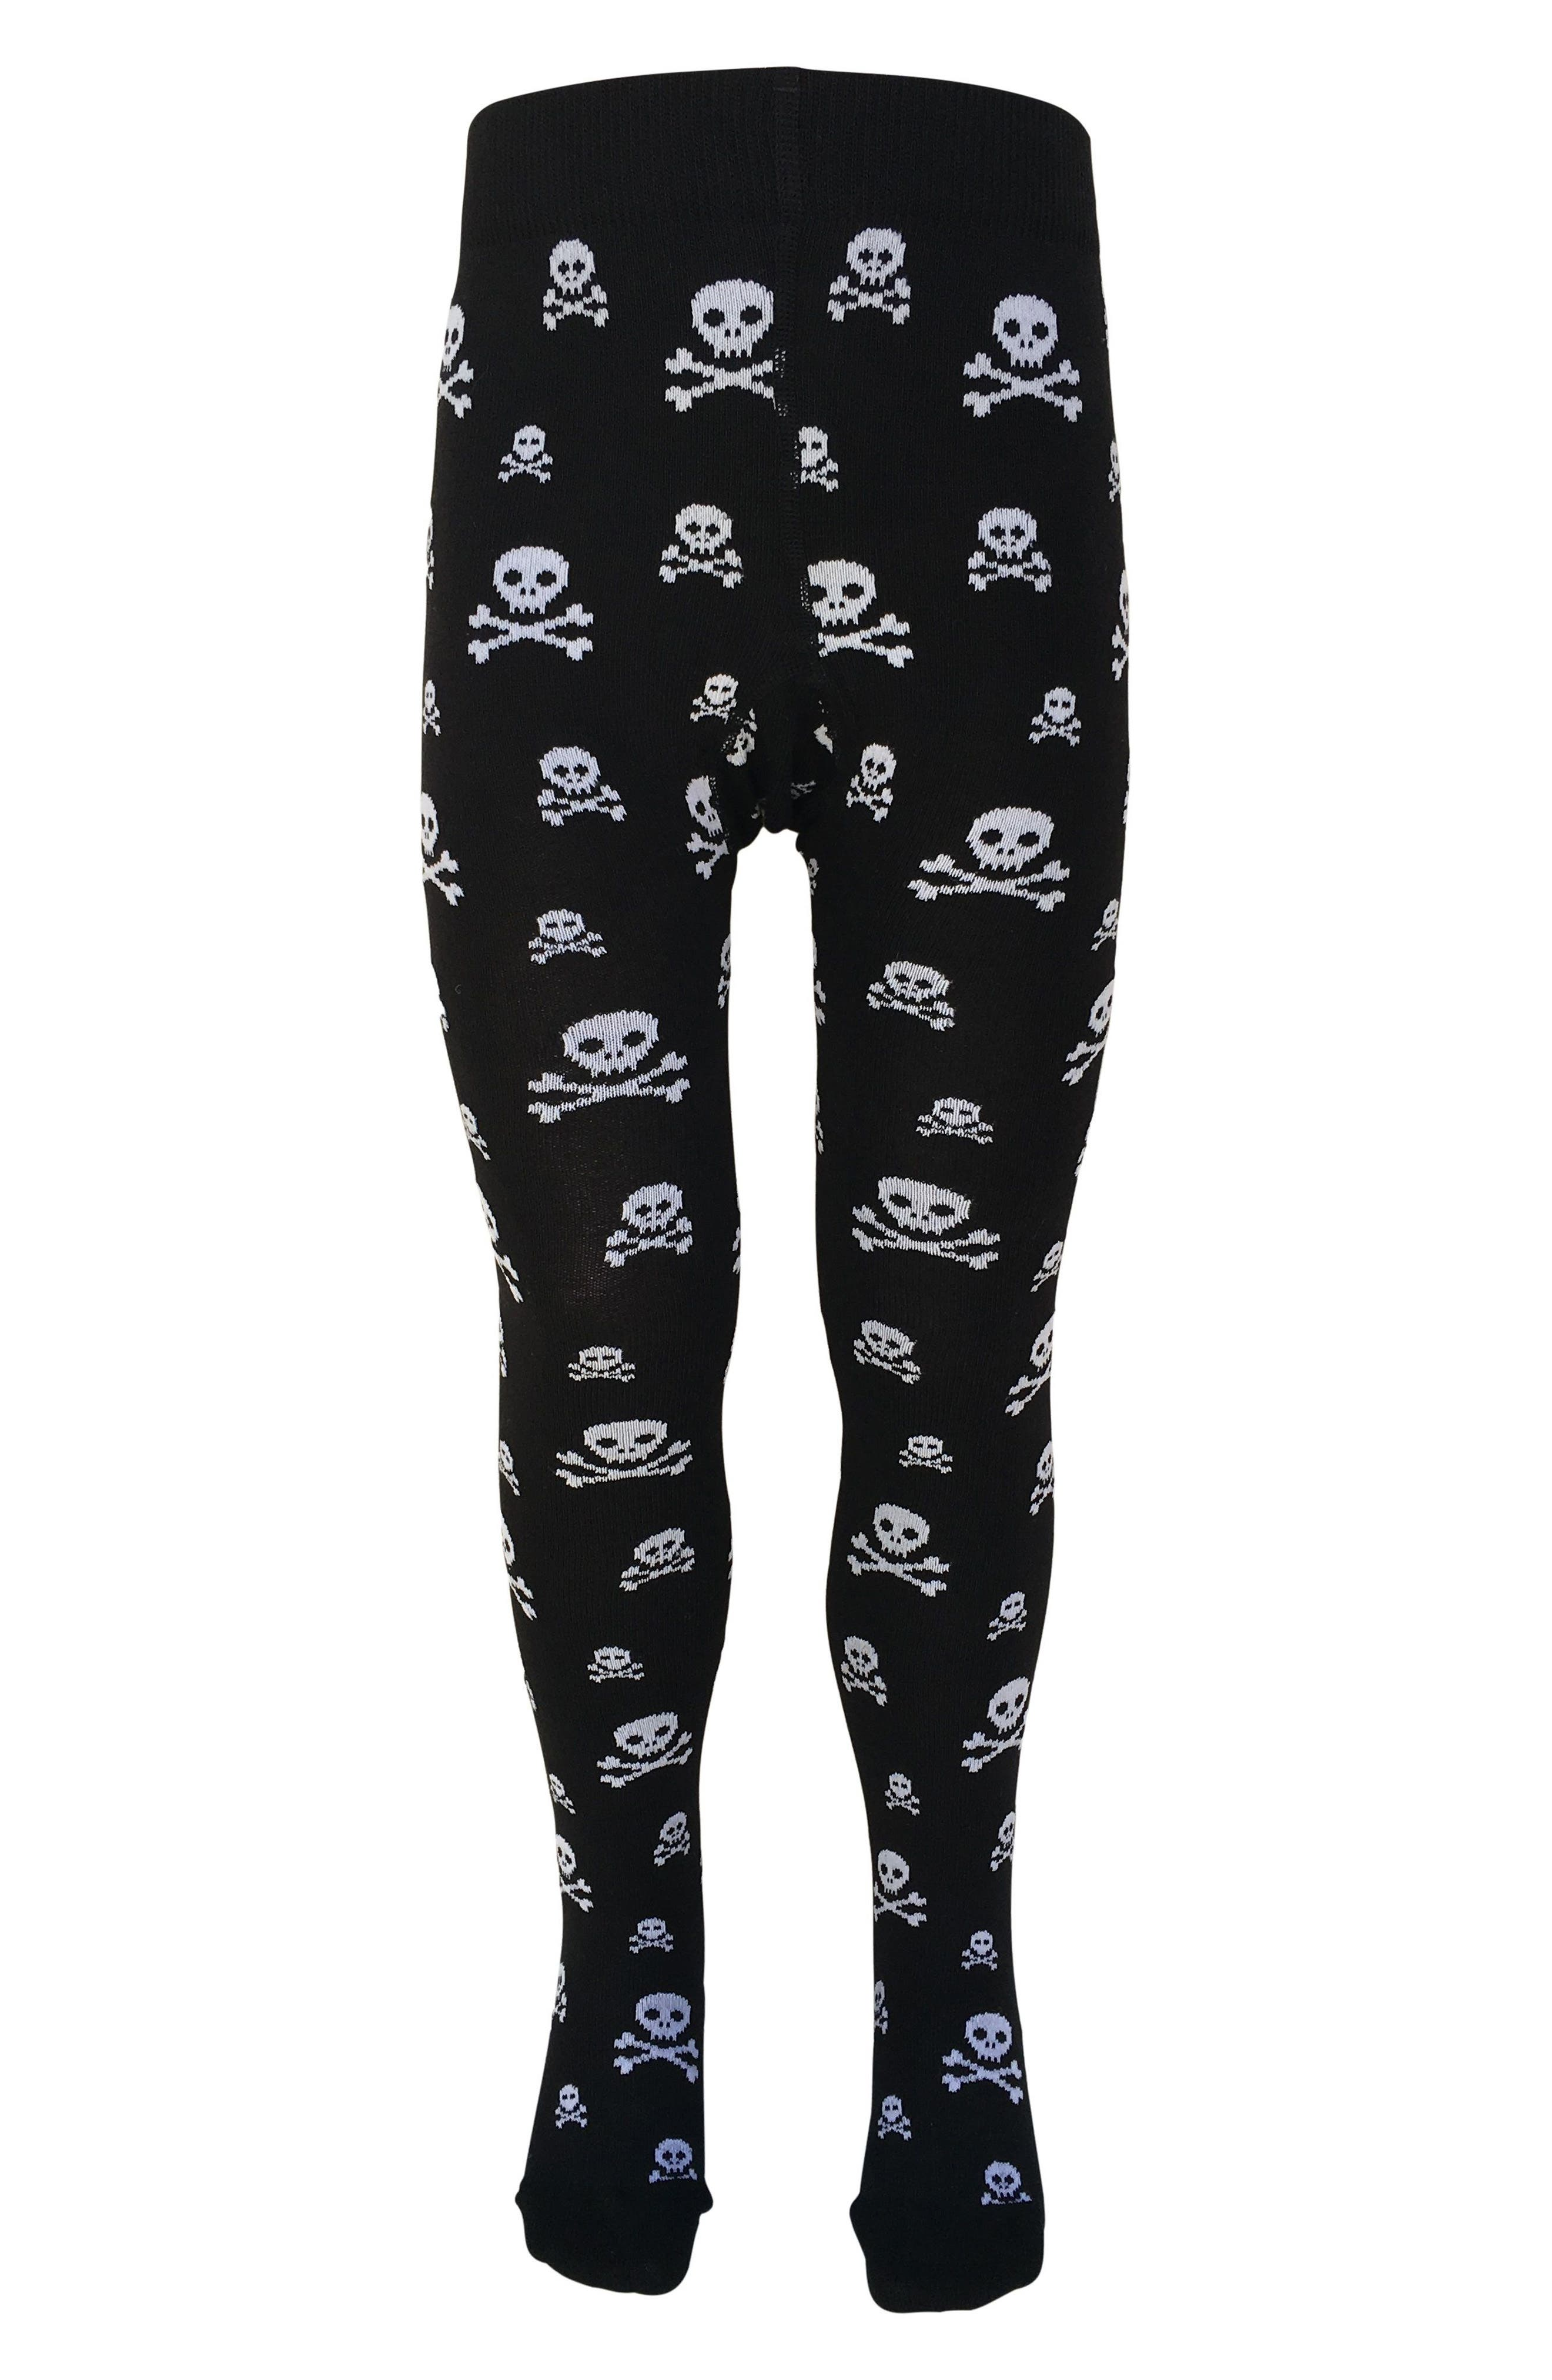 Skull Tights,                             Main thumbnail 1, color,